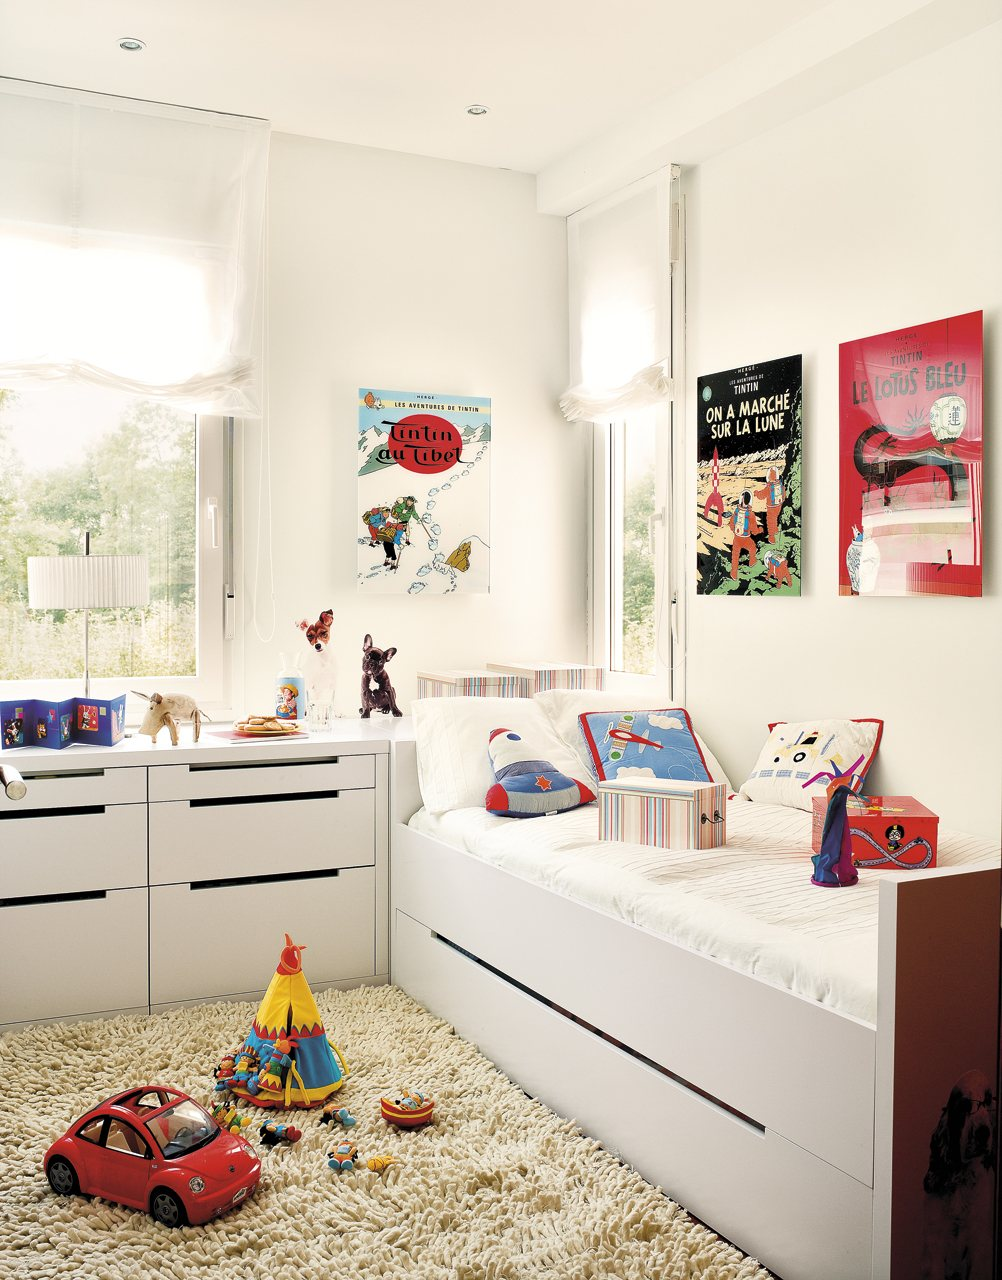 Ideas dormitorio infantil cool with ideas dormitorio - Ideas dormitorio infantil ...